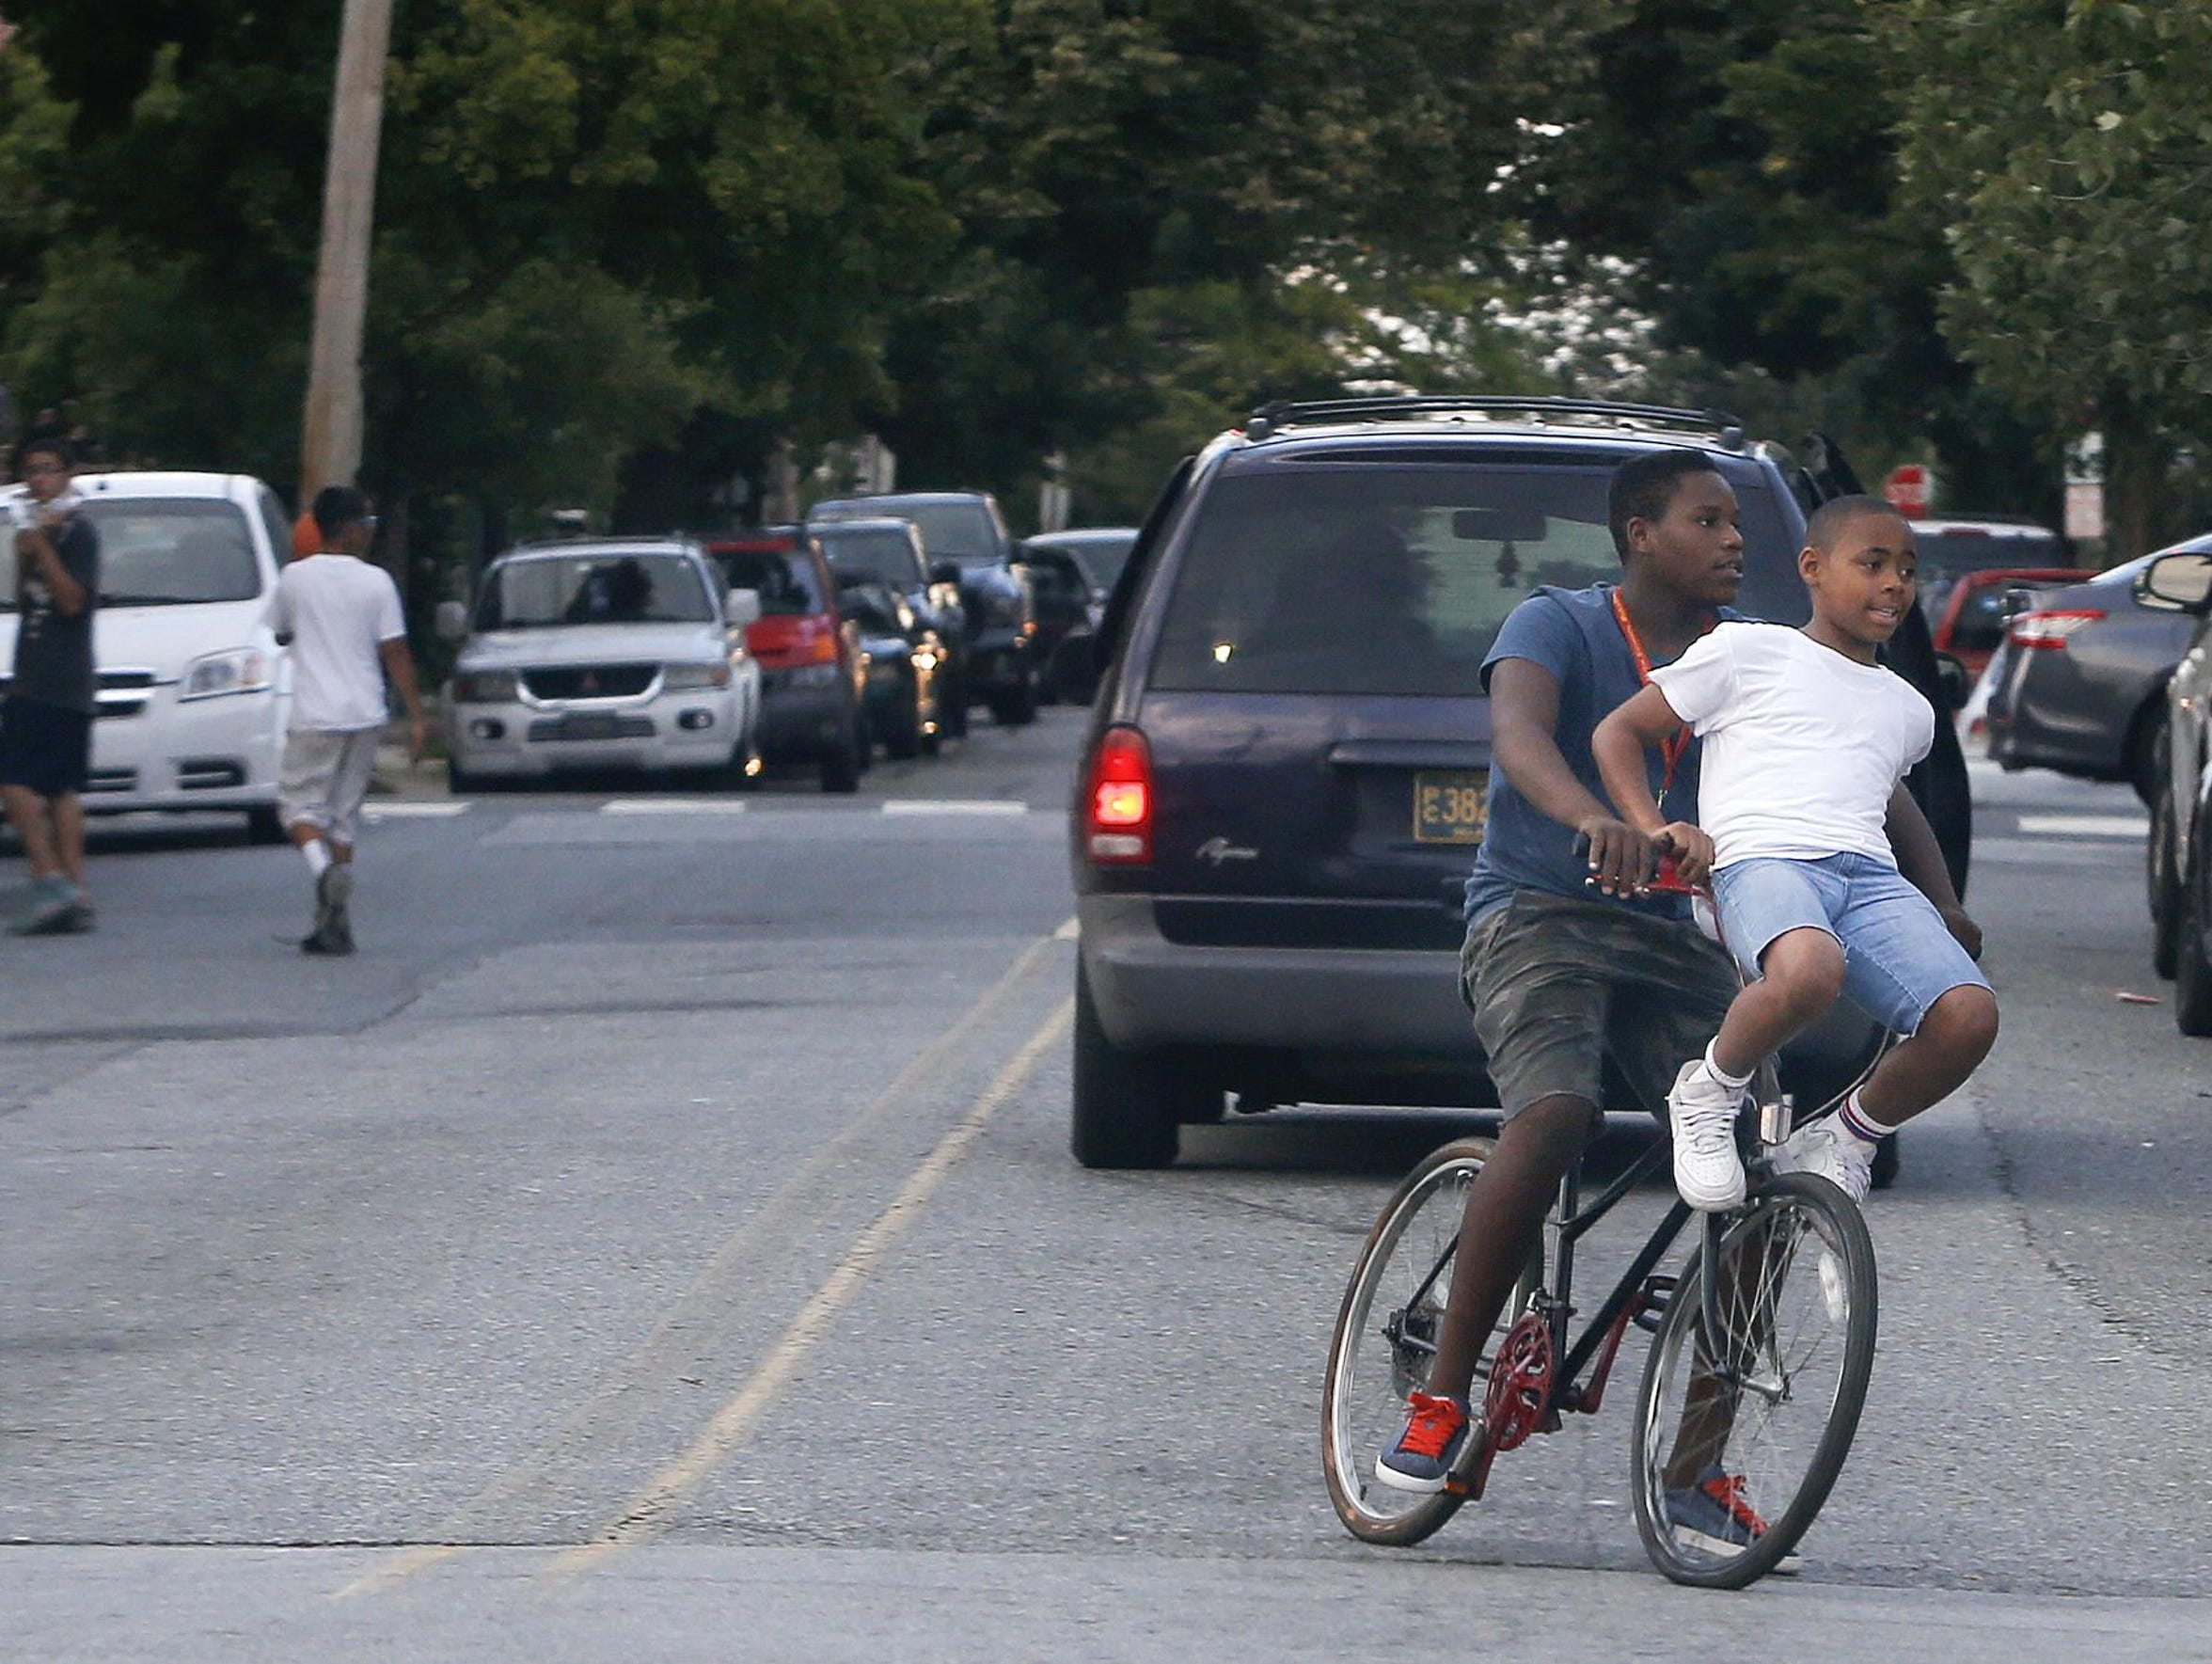 Young people share a bike ride on N. Scott Street in